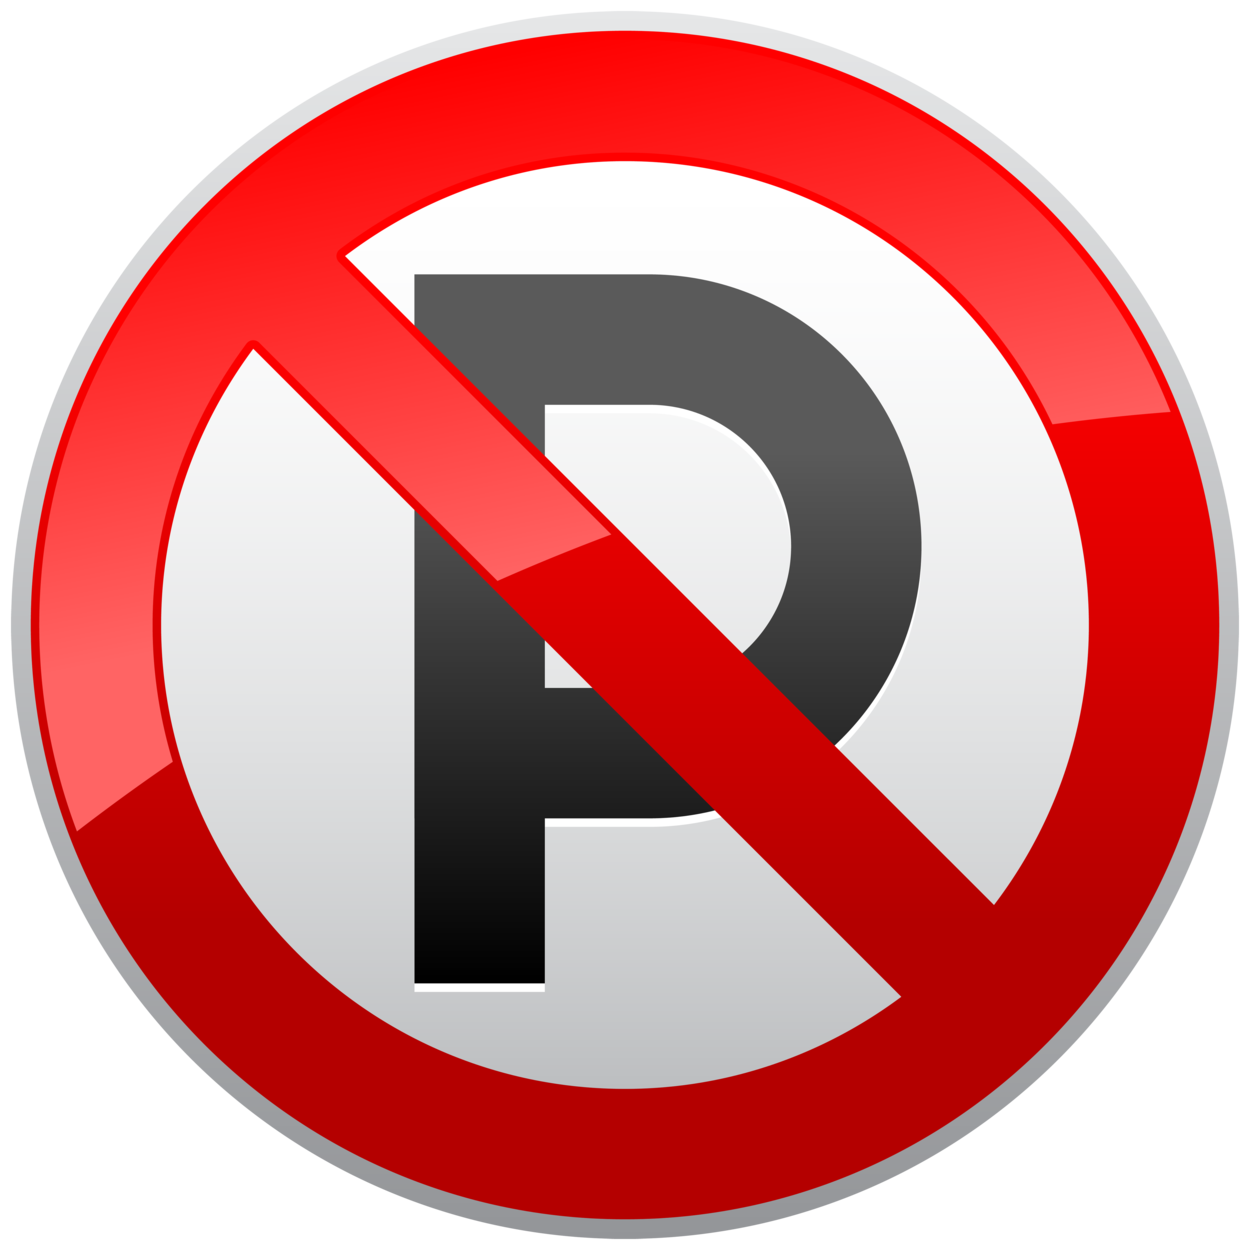 Prohibited clipart slash for free download and use images in.